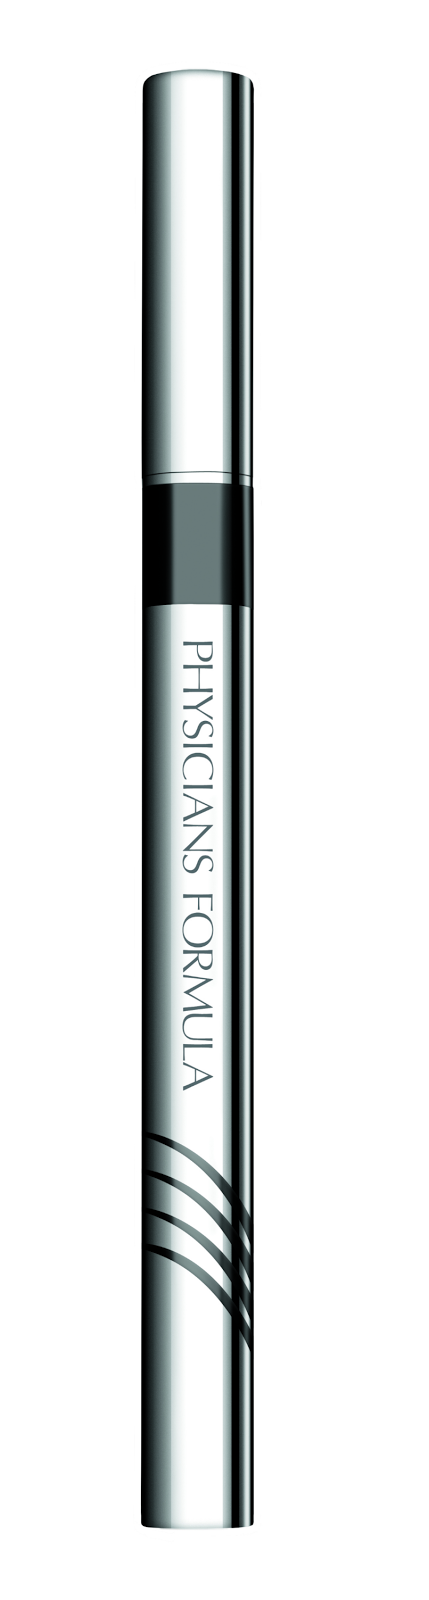 mascara physician formula